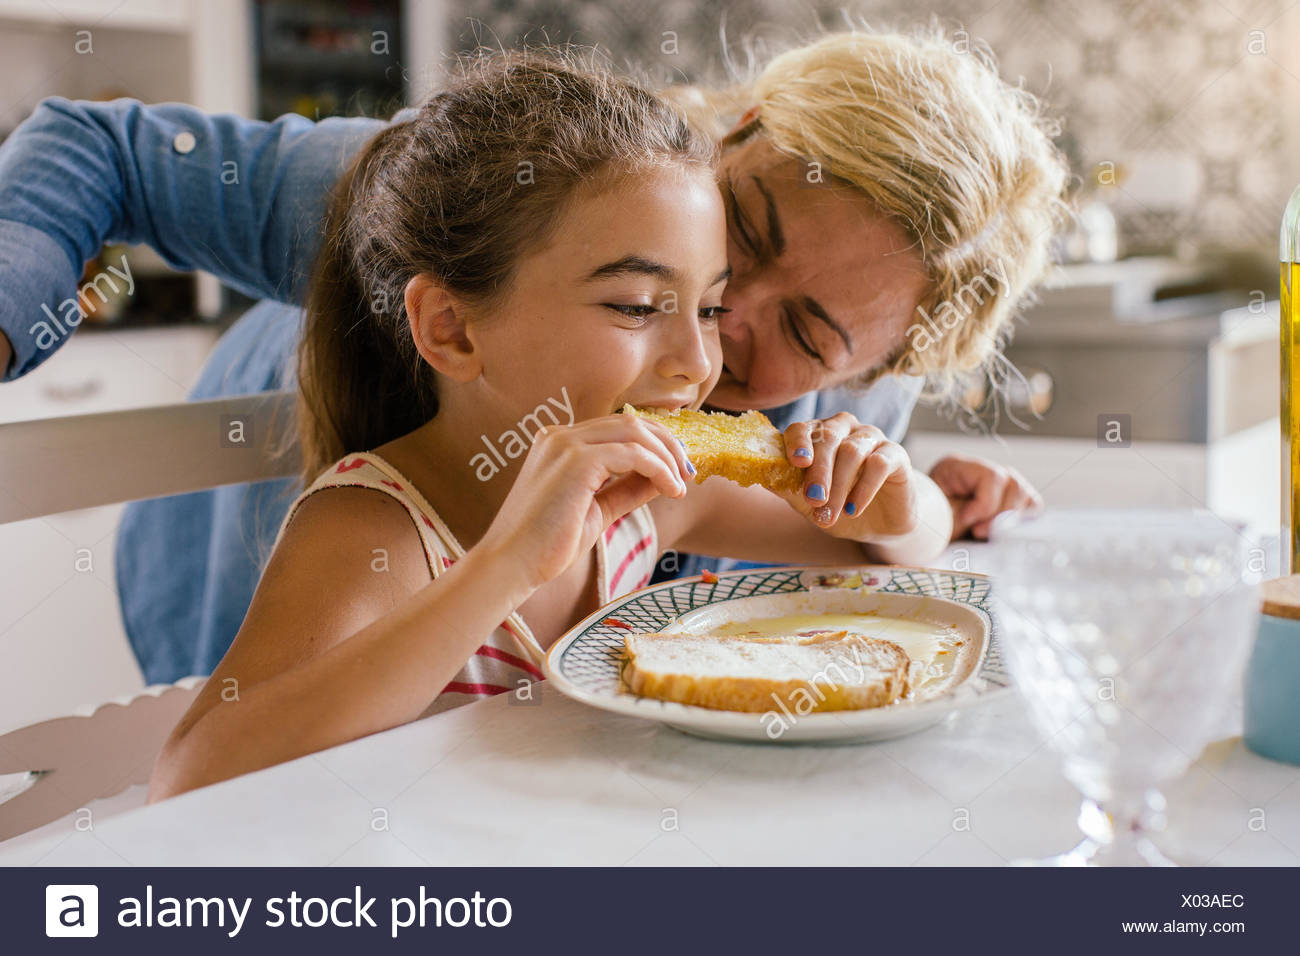 Girl eating toast with grandmother - Stock Image